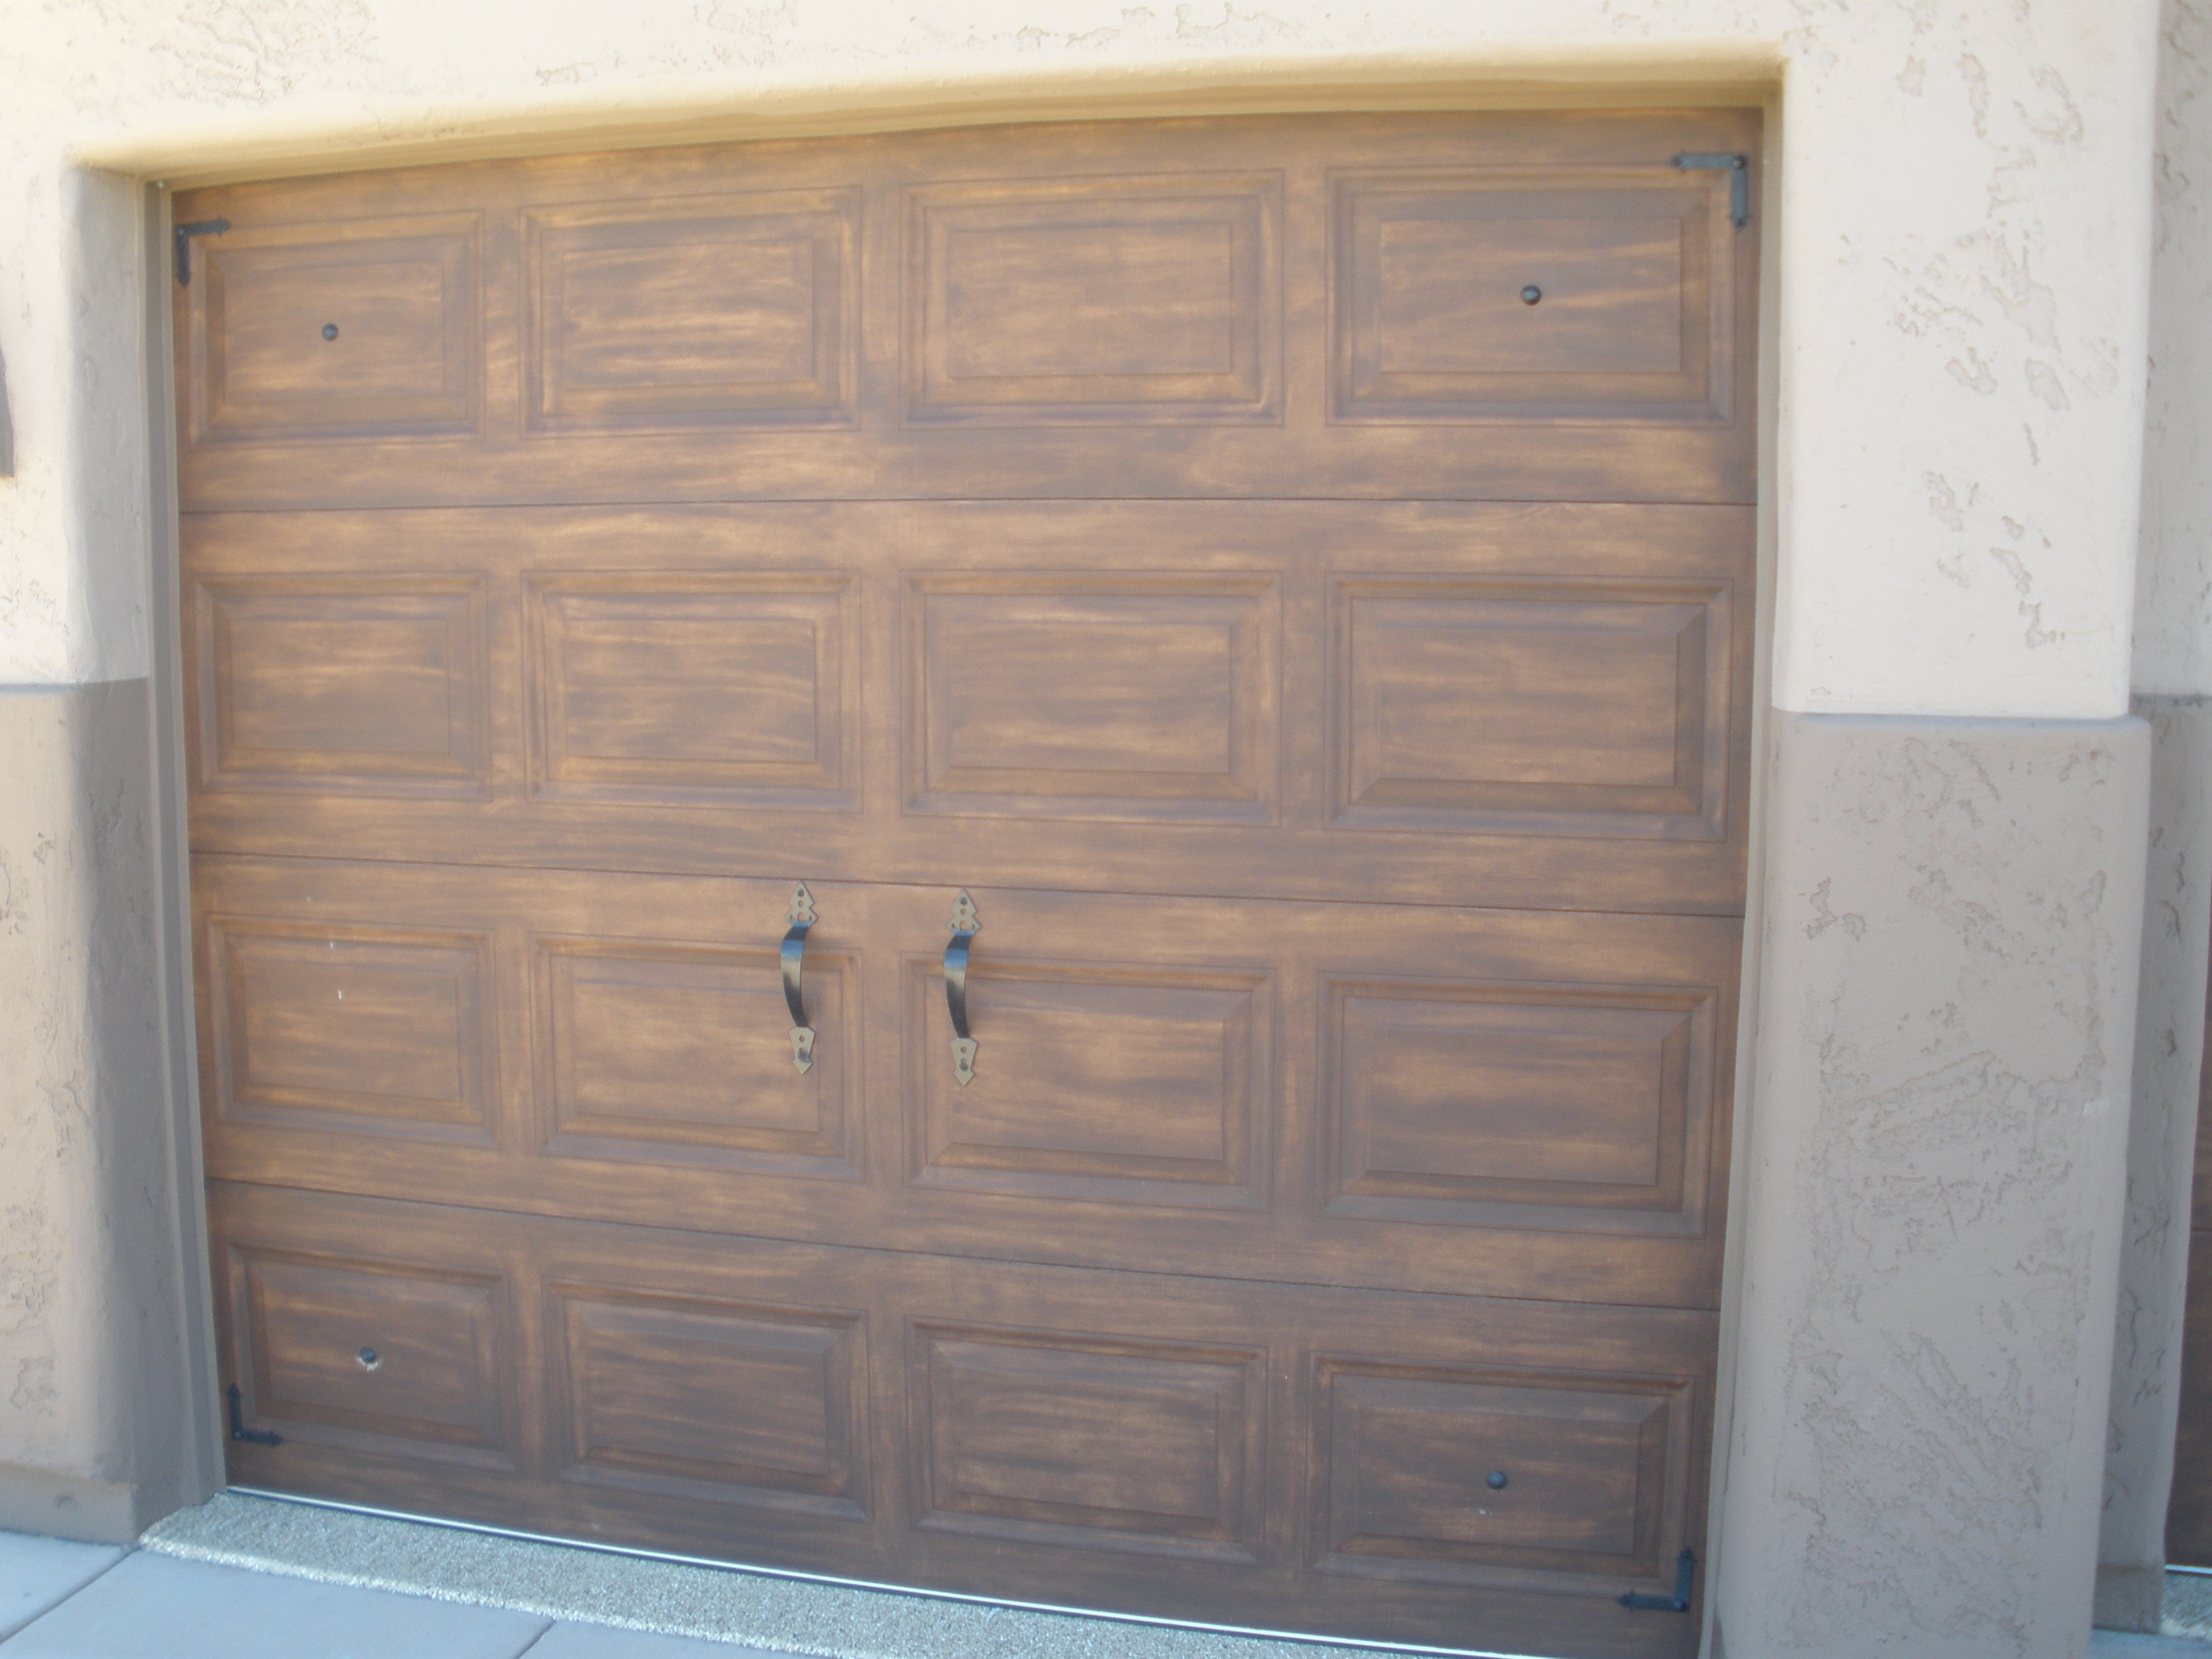 Painted Garage Doors Faux Wood To Match The Door